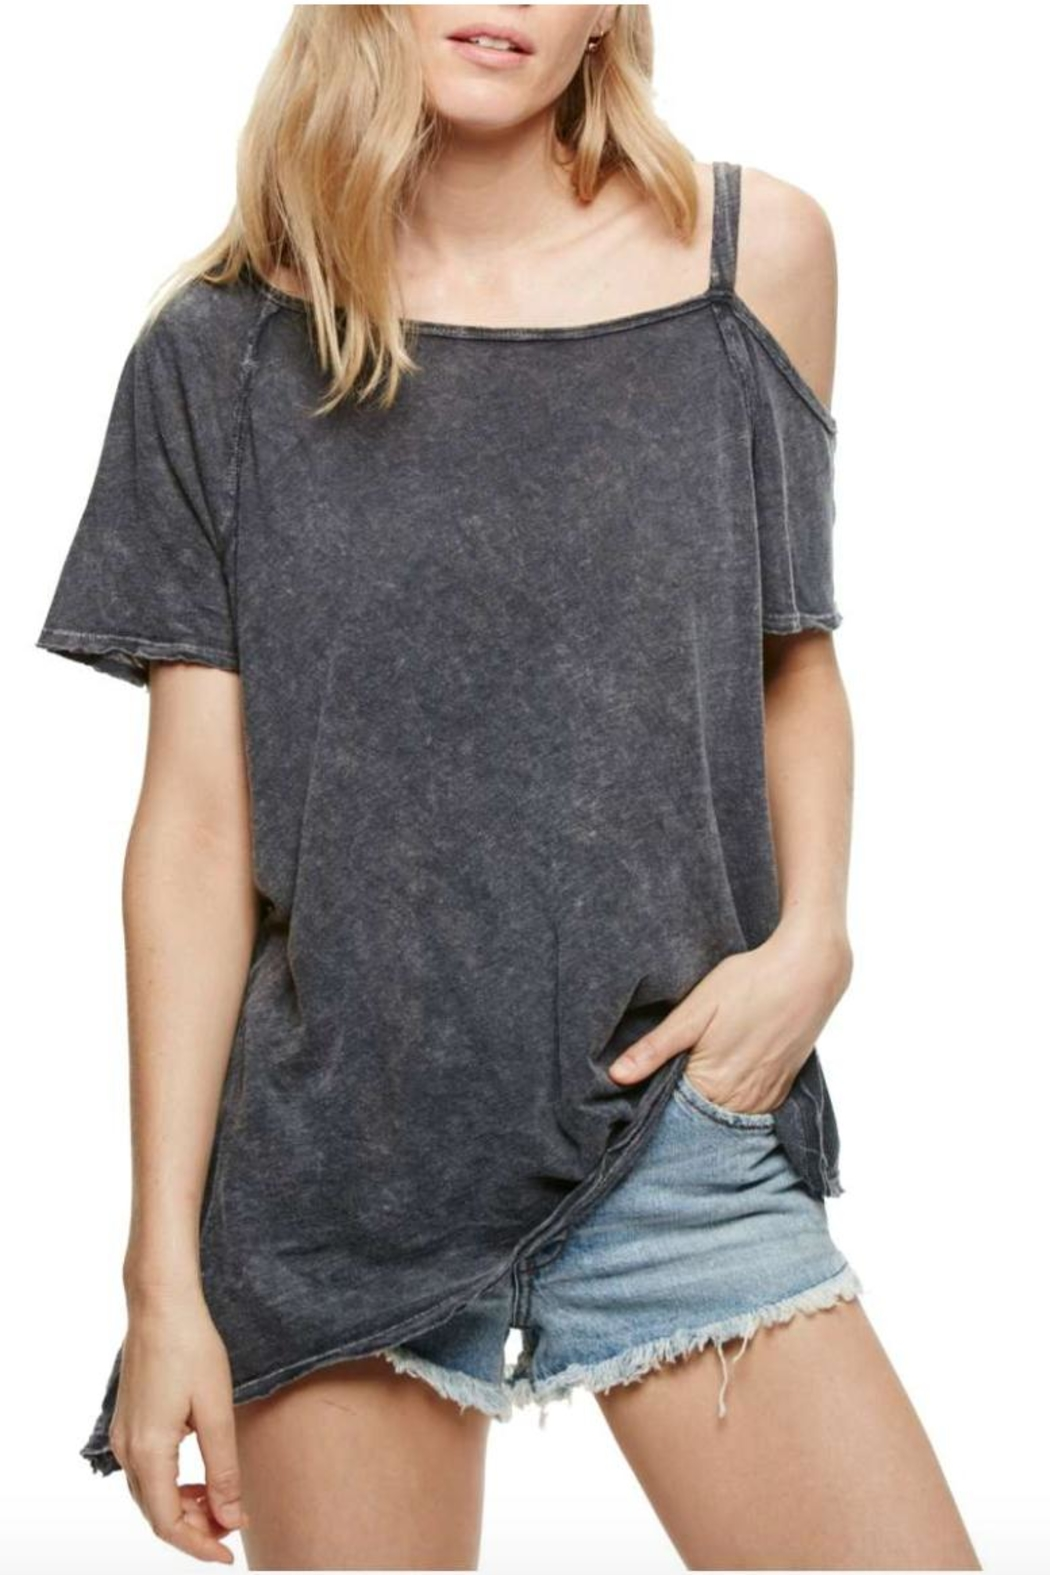 Free People Cut Out Washed Tee - Main Image